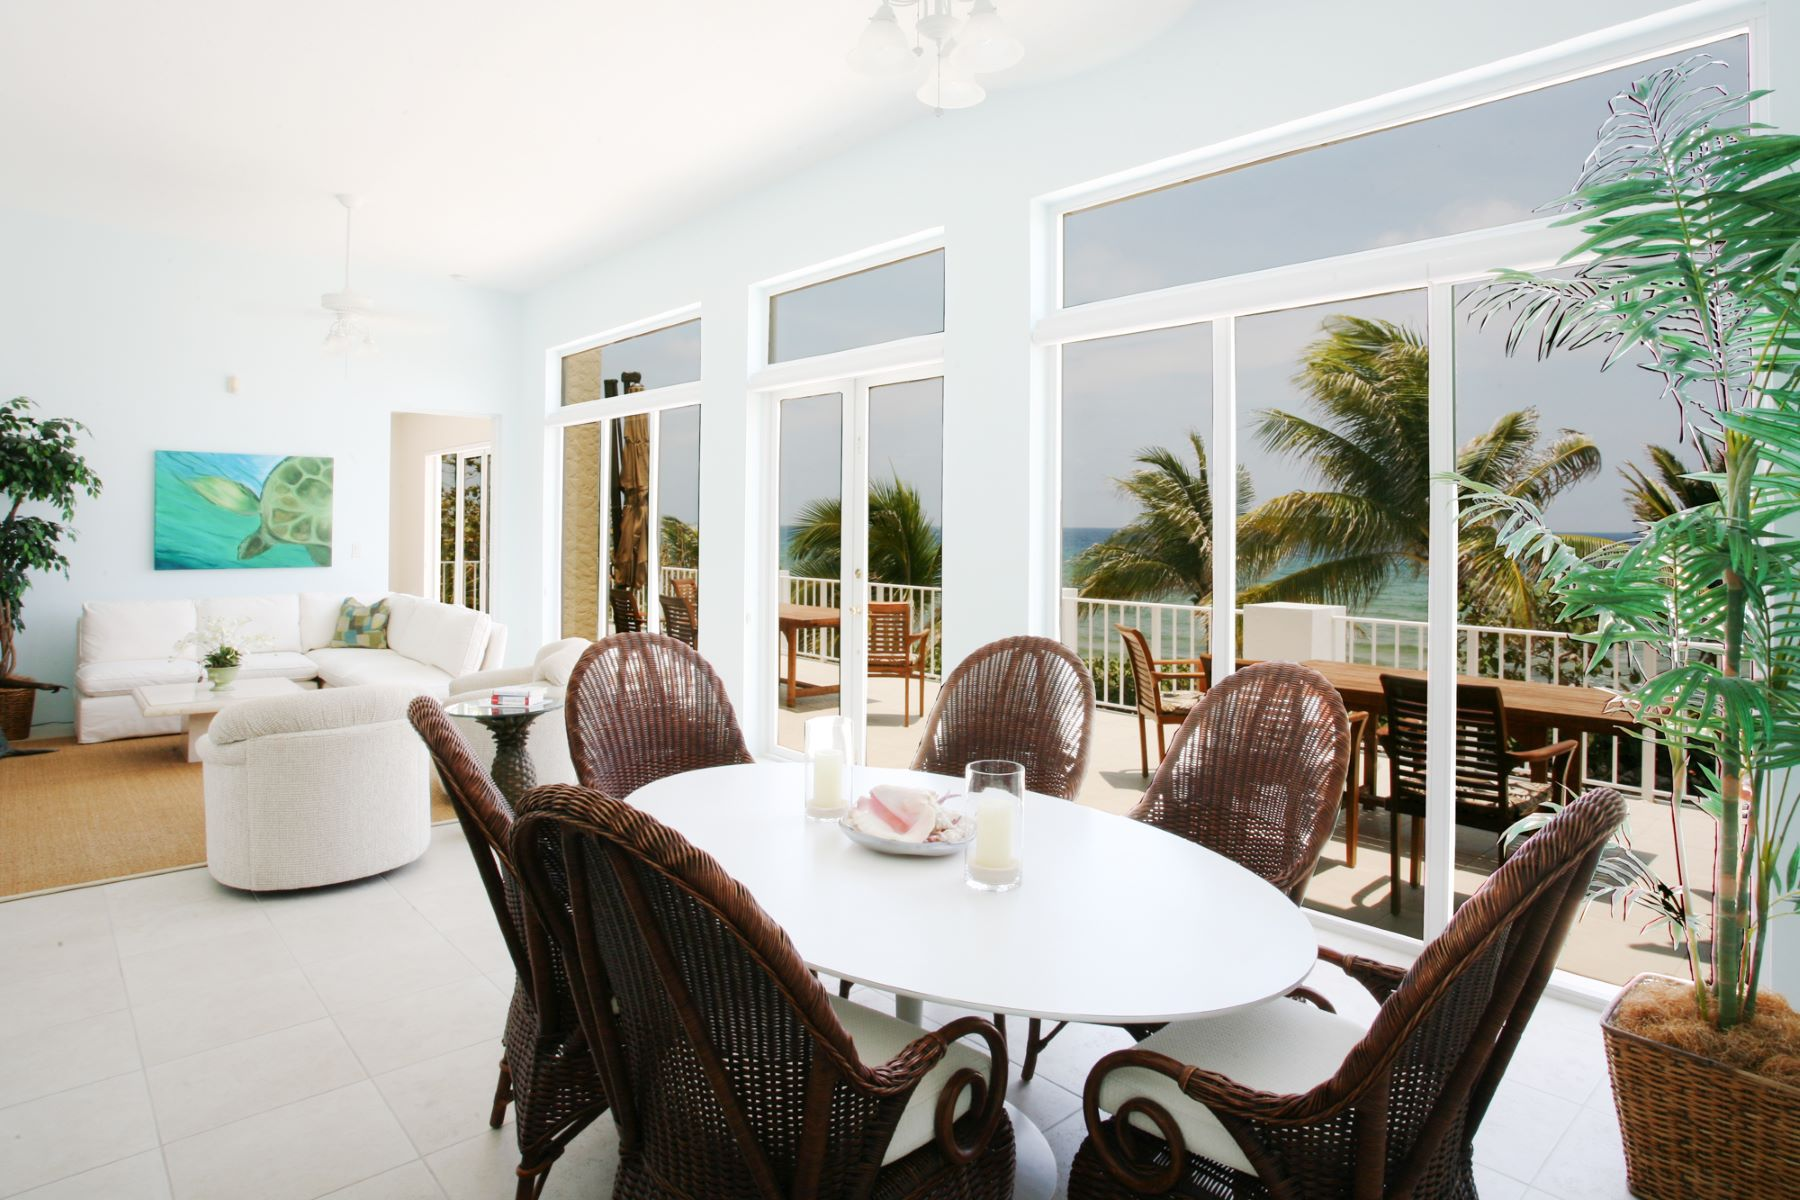 Additional photo for property listing at Villa Caymanas 大开曼岛北部, 大开曼岛 开曼群岛